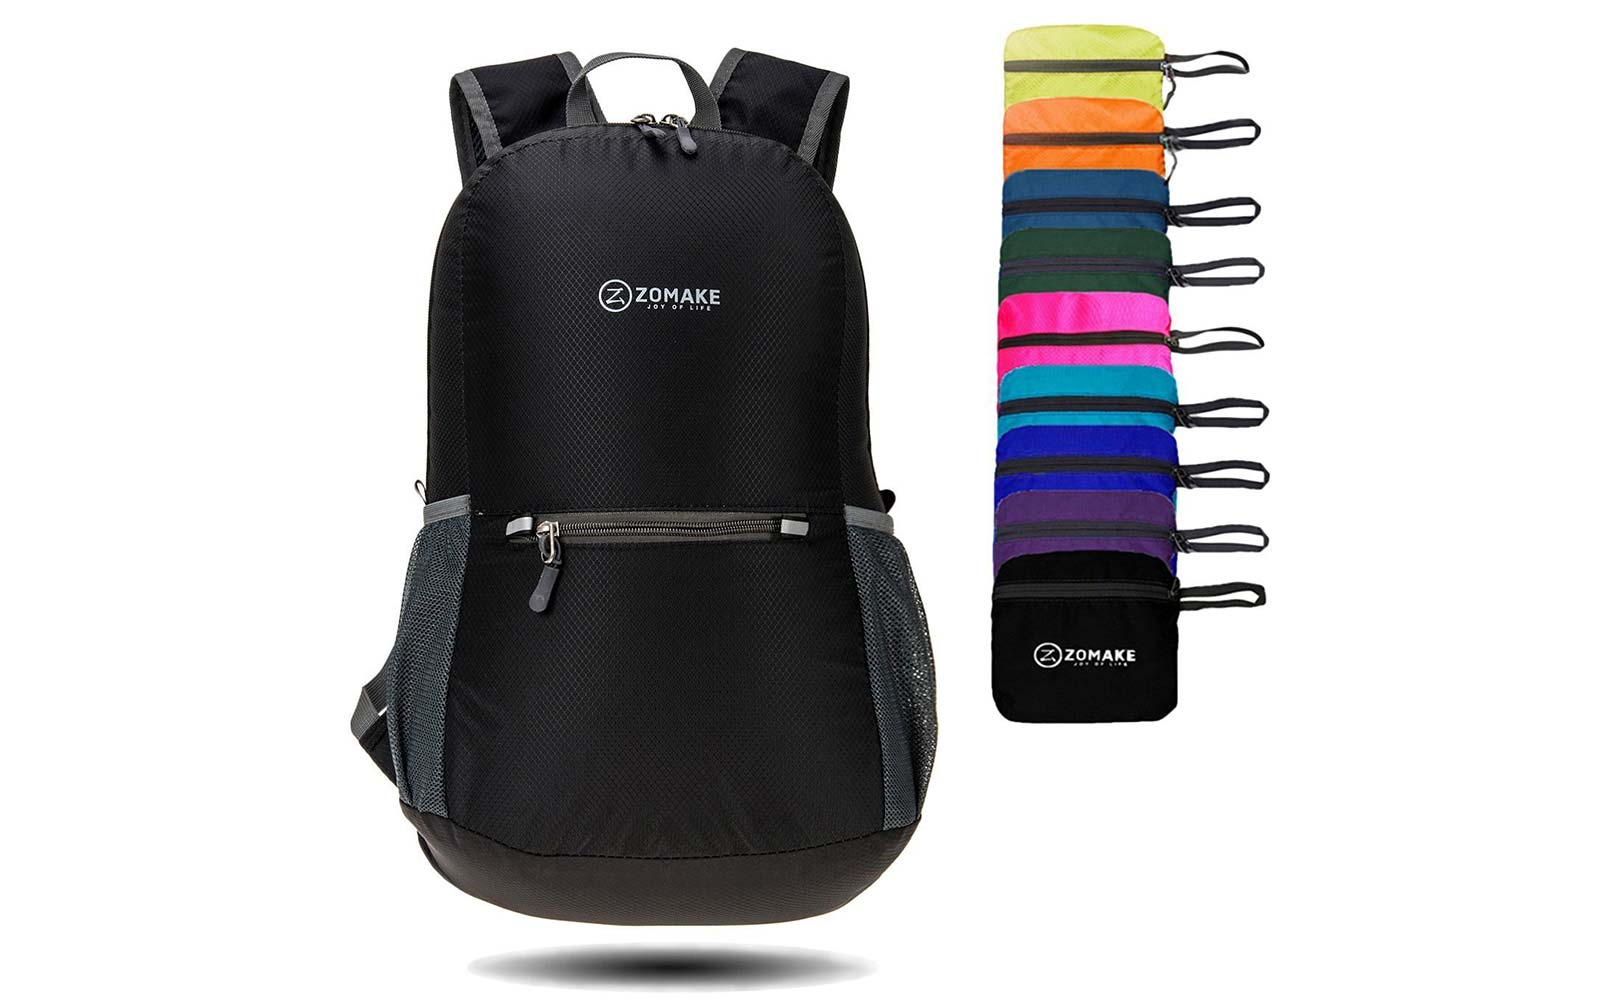 ZOMAKE packable water resistant backpack Gift Guide Under $25